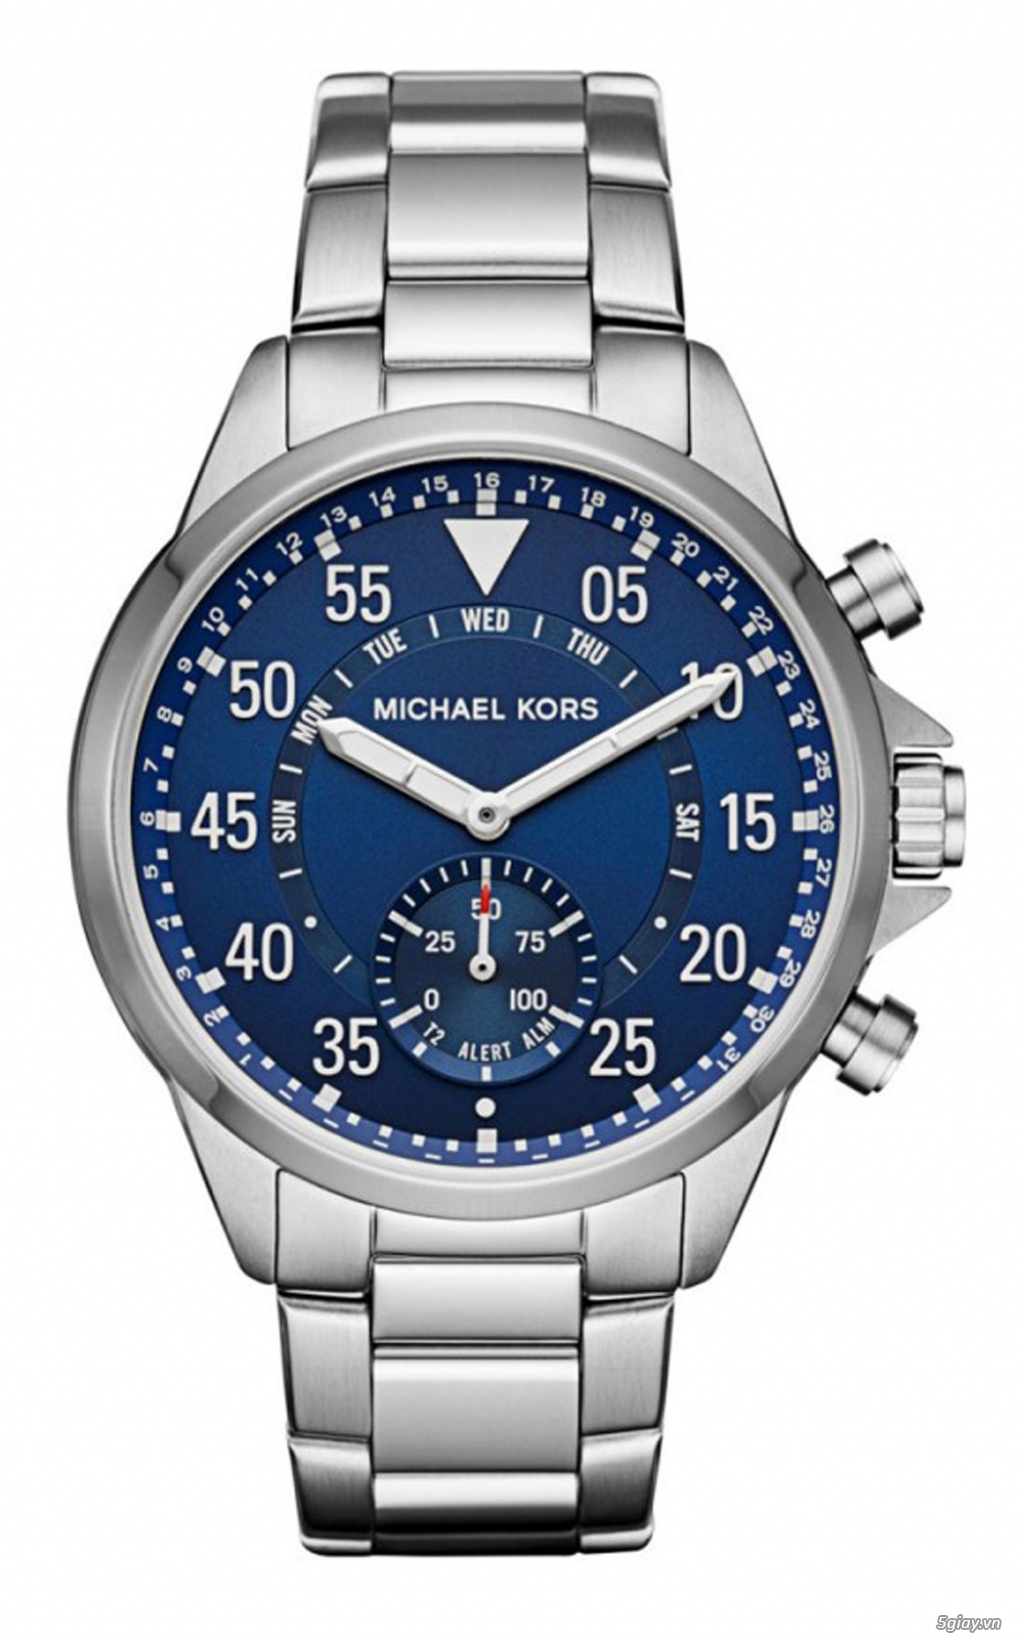 [Hybrid Smart Watch] MICHAEL KORS Gage / End 22h59 15/11/2019.